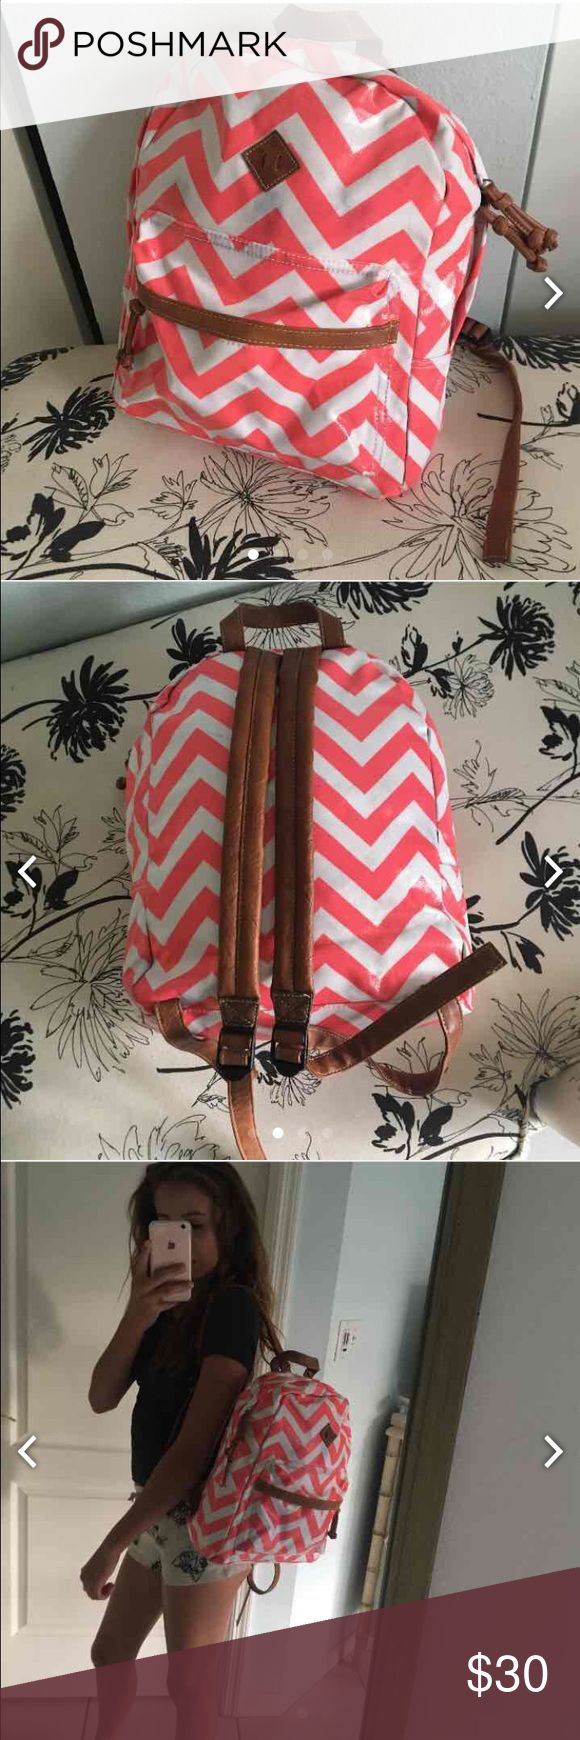 Chevron backpack Glossy Pink & White chevron backpack with beige straps Bags Backpacks